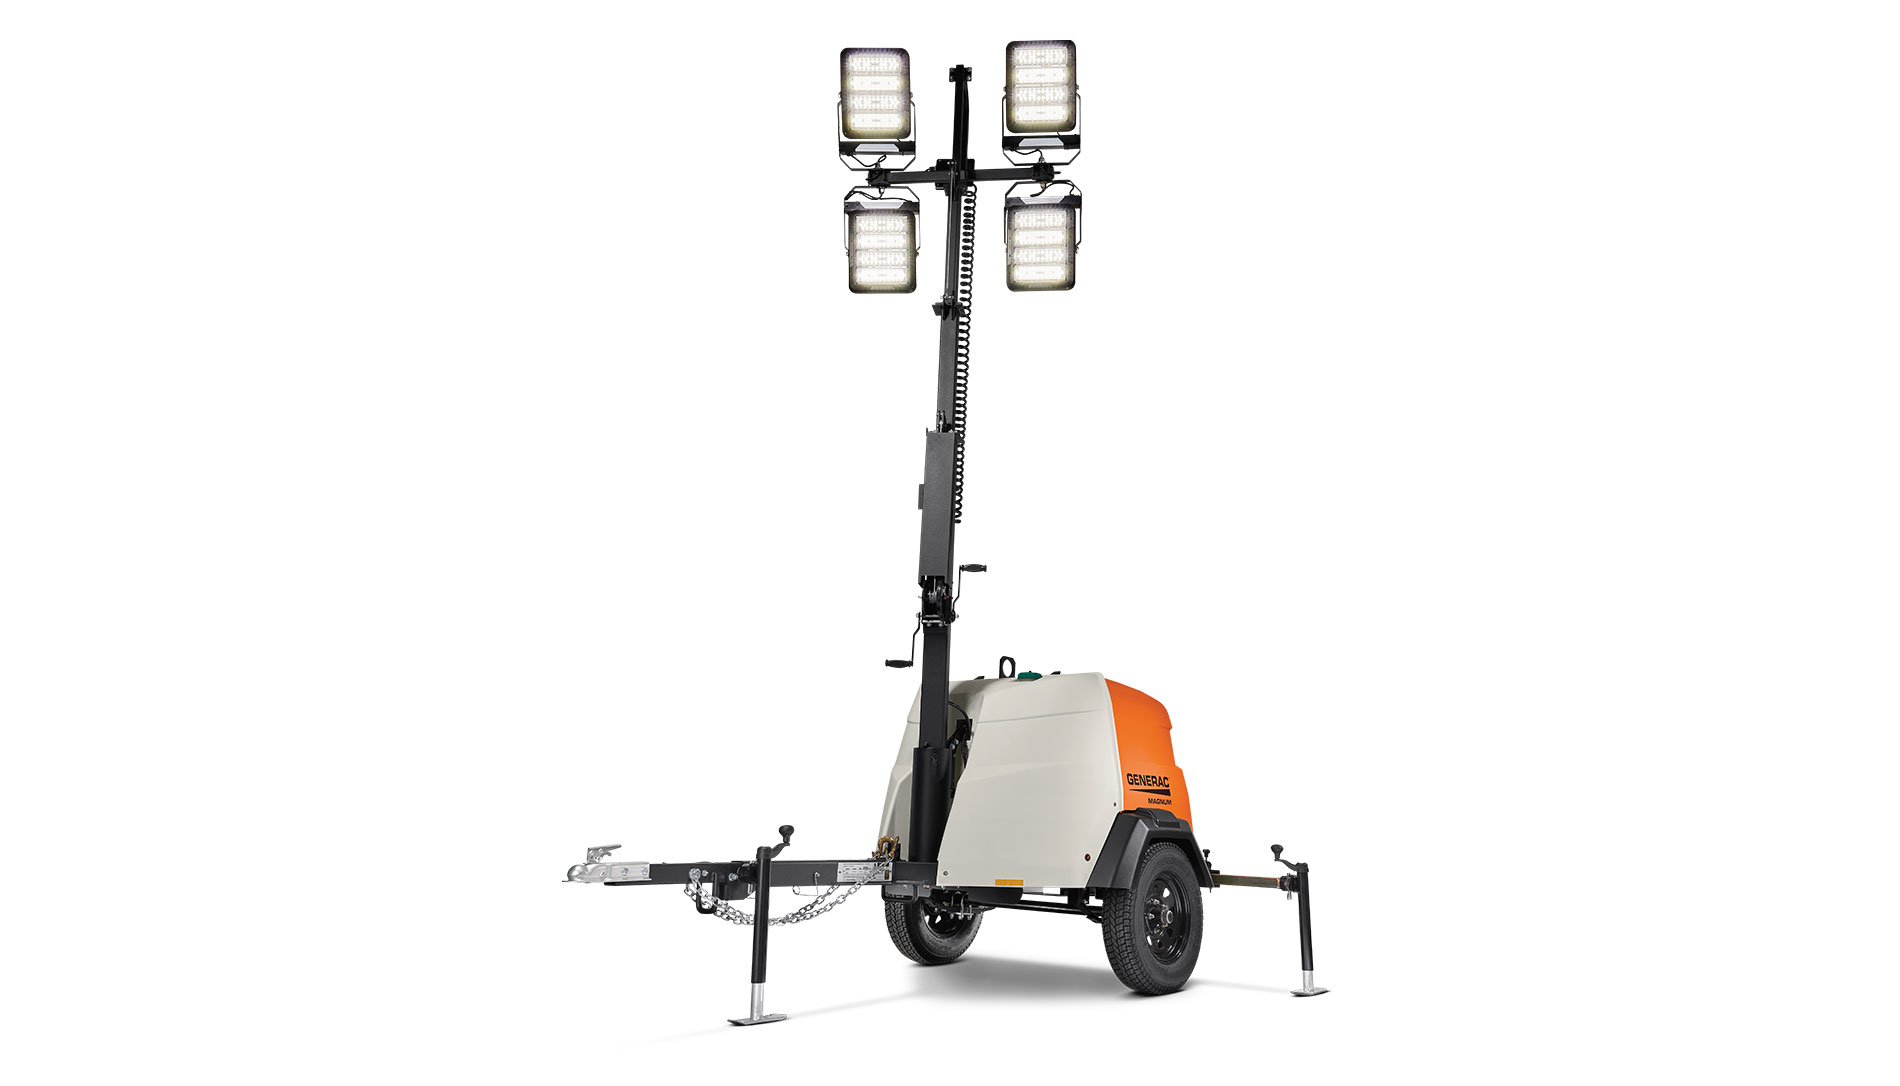 Generac MLT6SMD portable LED light tower